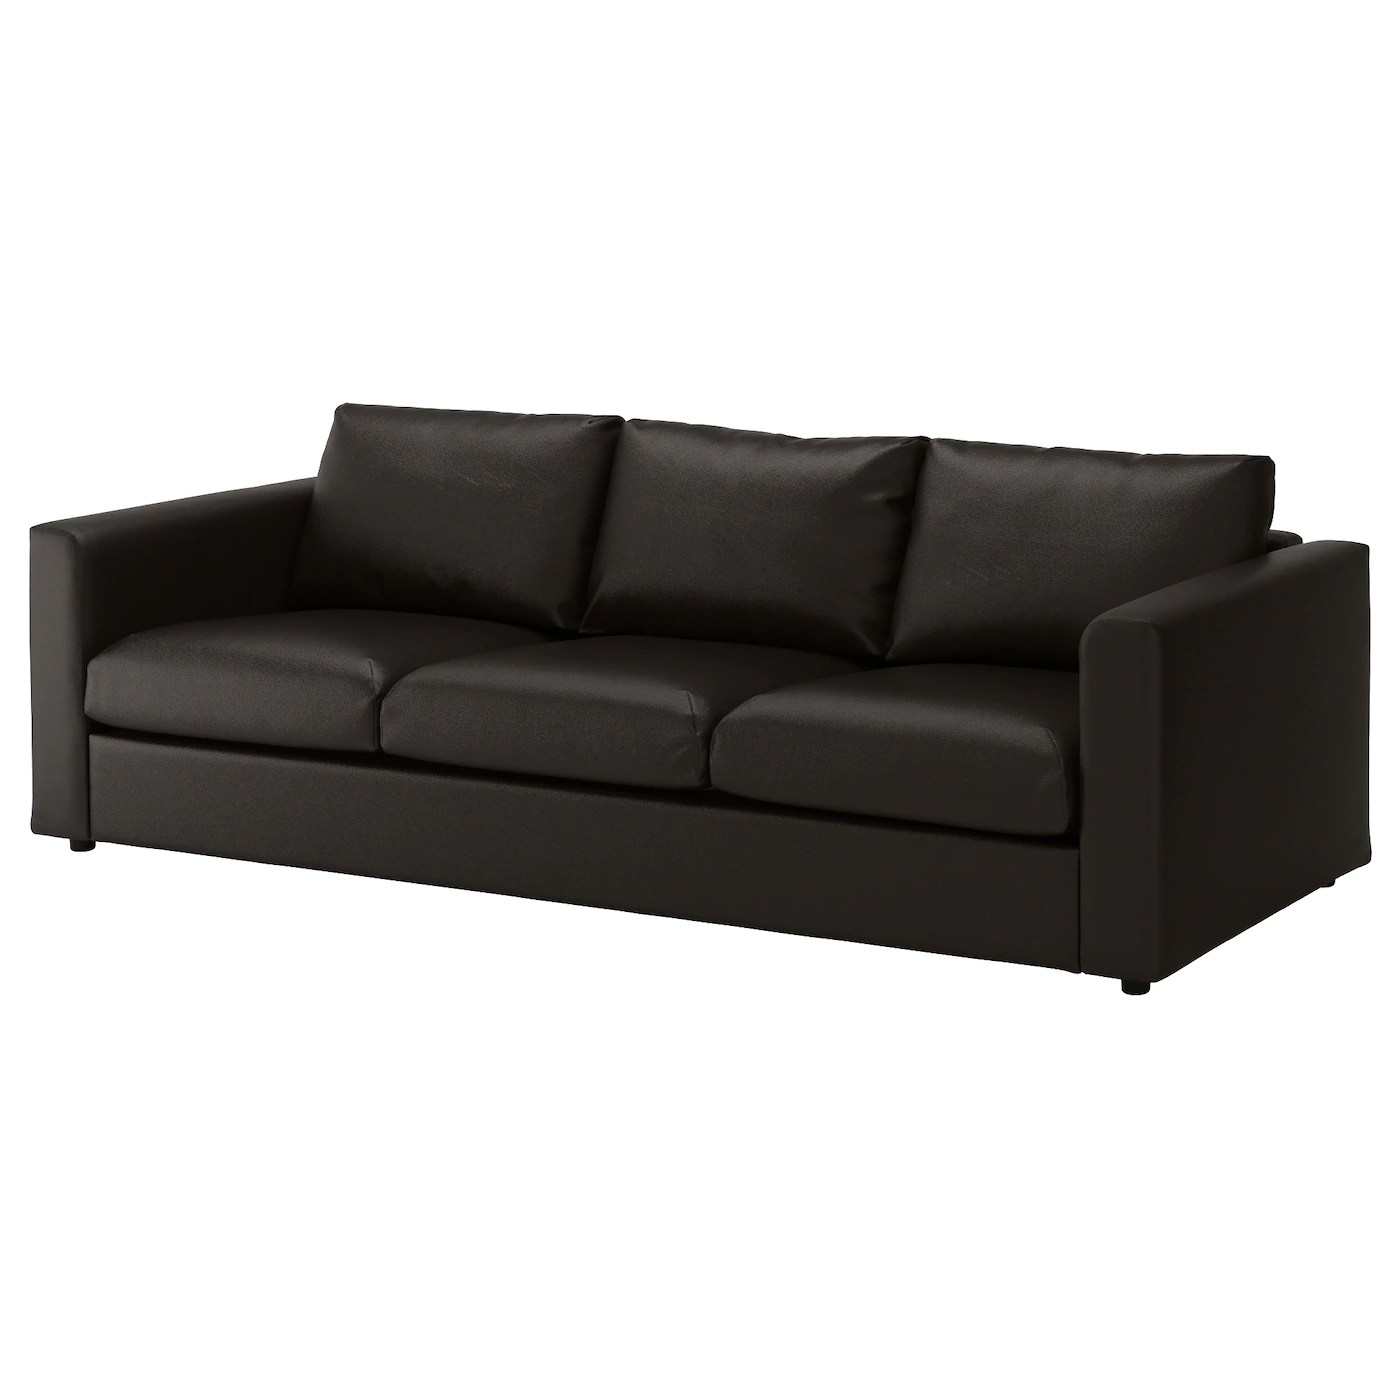 black 3 seater sofa and cuddle chair bed sale in london vimle seat farsta ikea